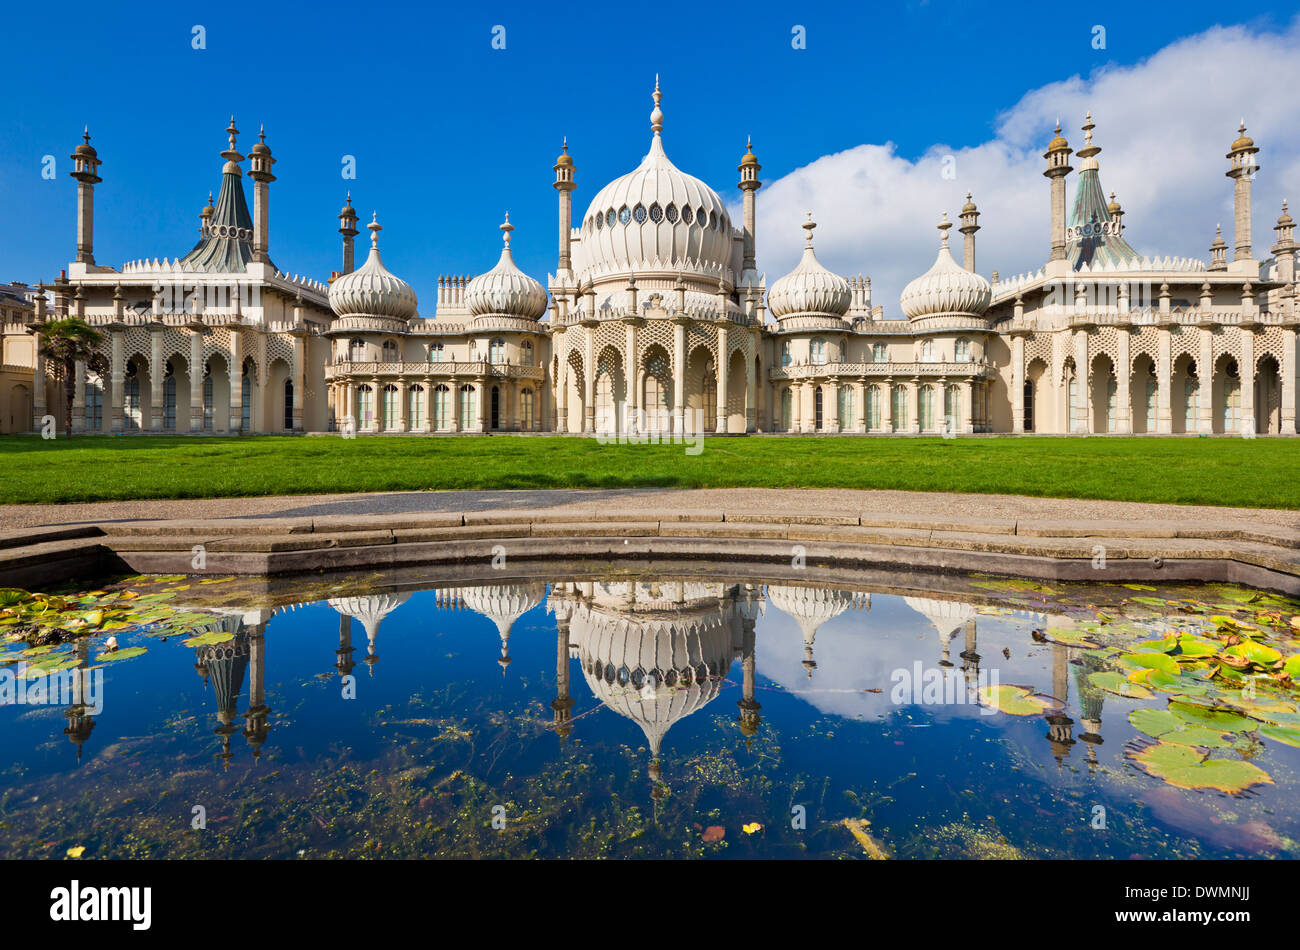 Le pavillon royal de Brighton avec réflexion, Brighton, East Sussex, Angleterre, Royaume-Uni, Europe Photo Stock